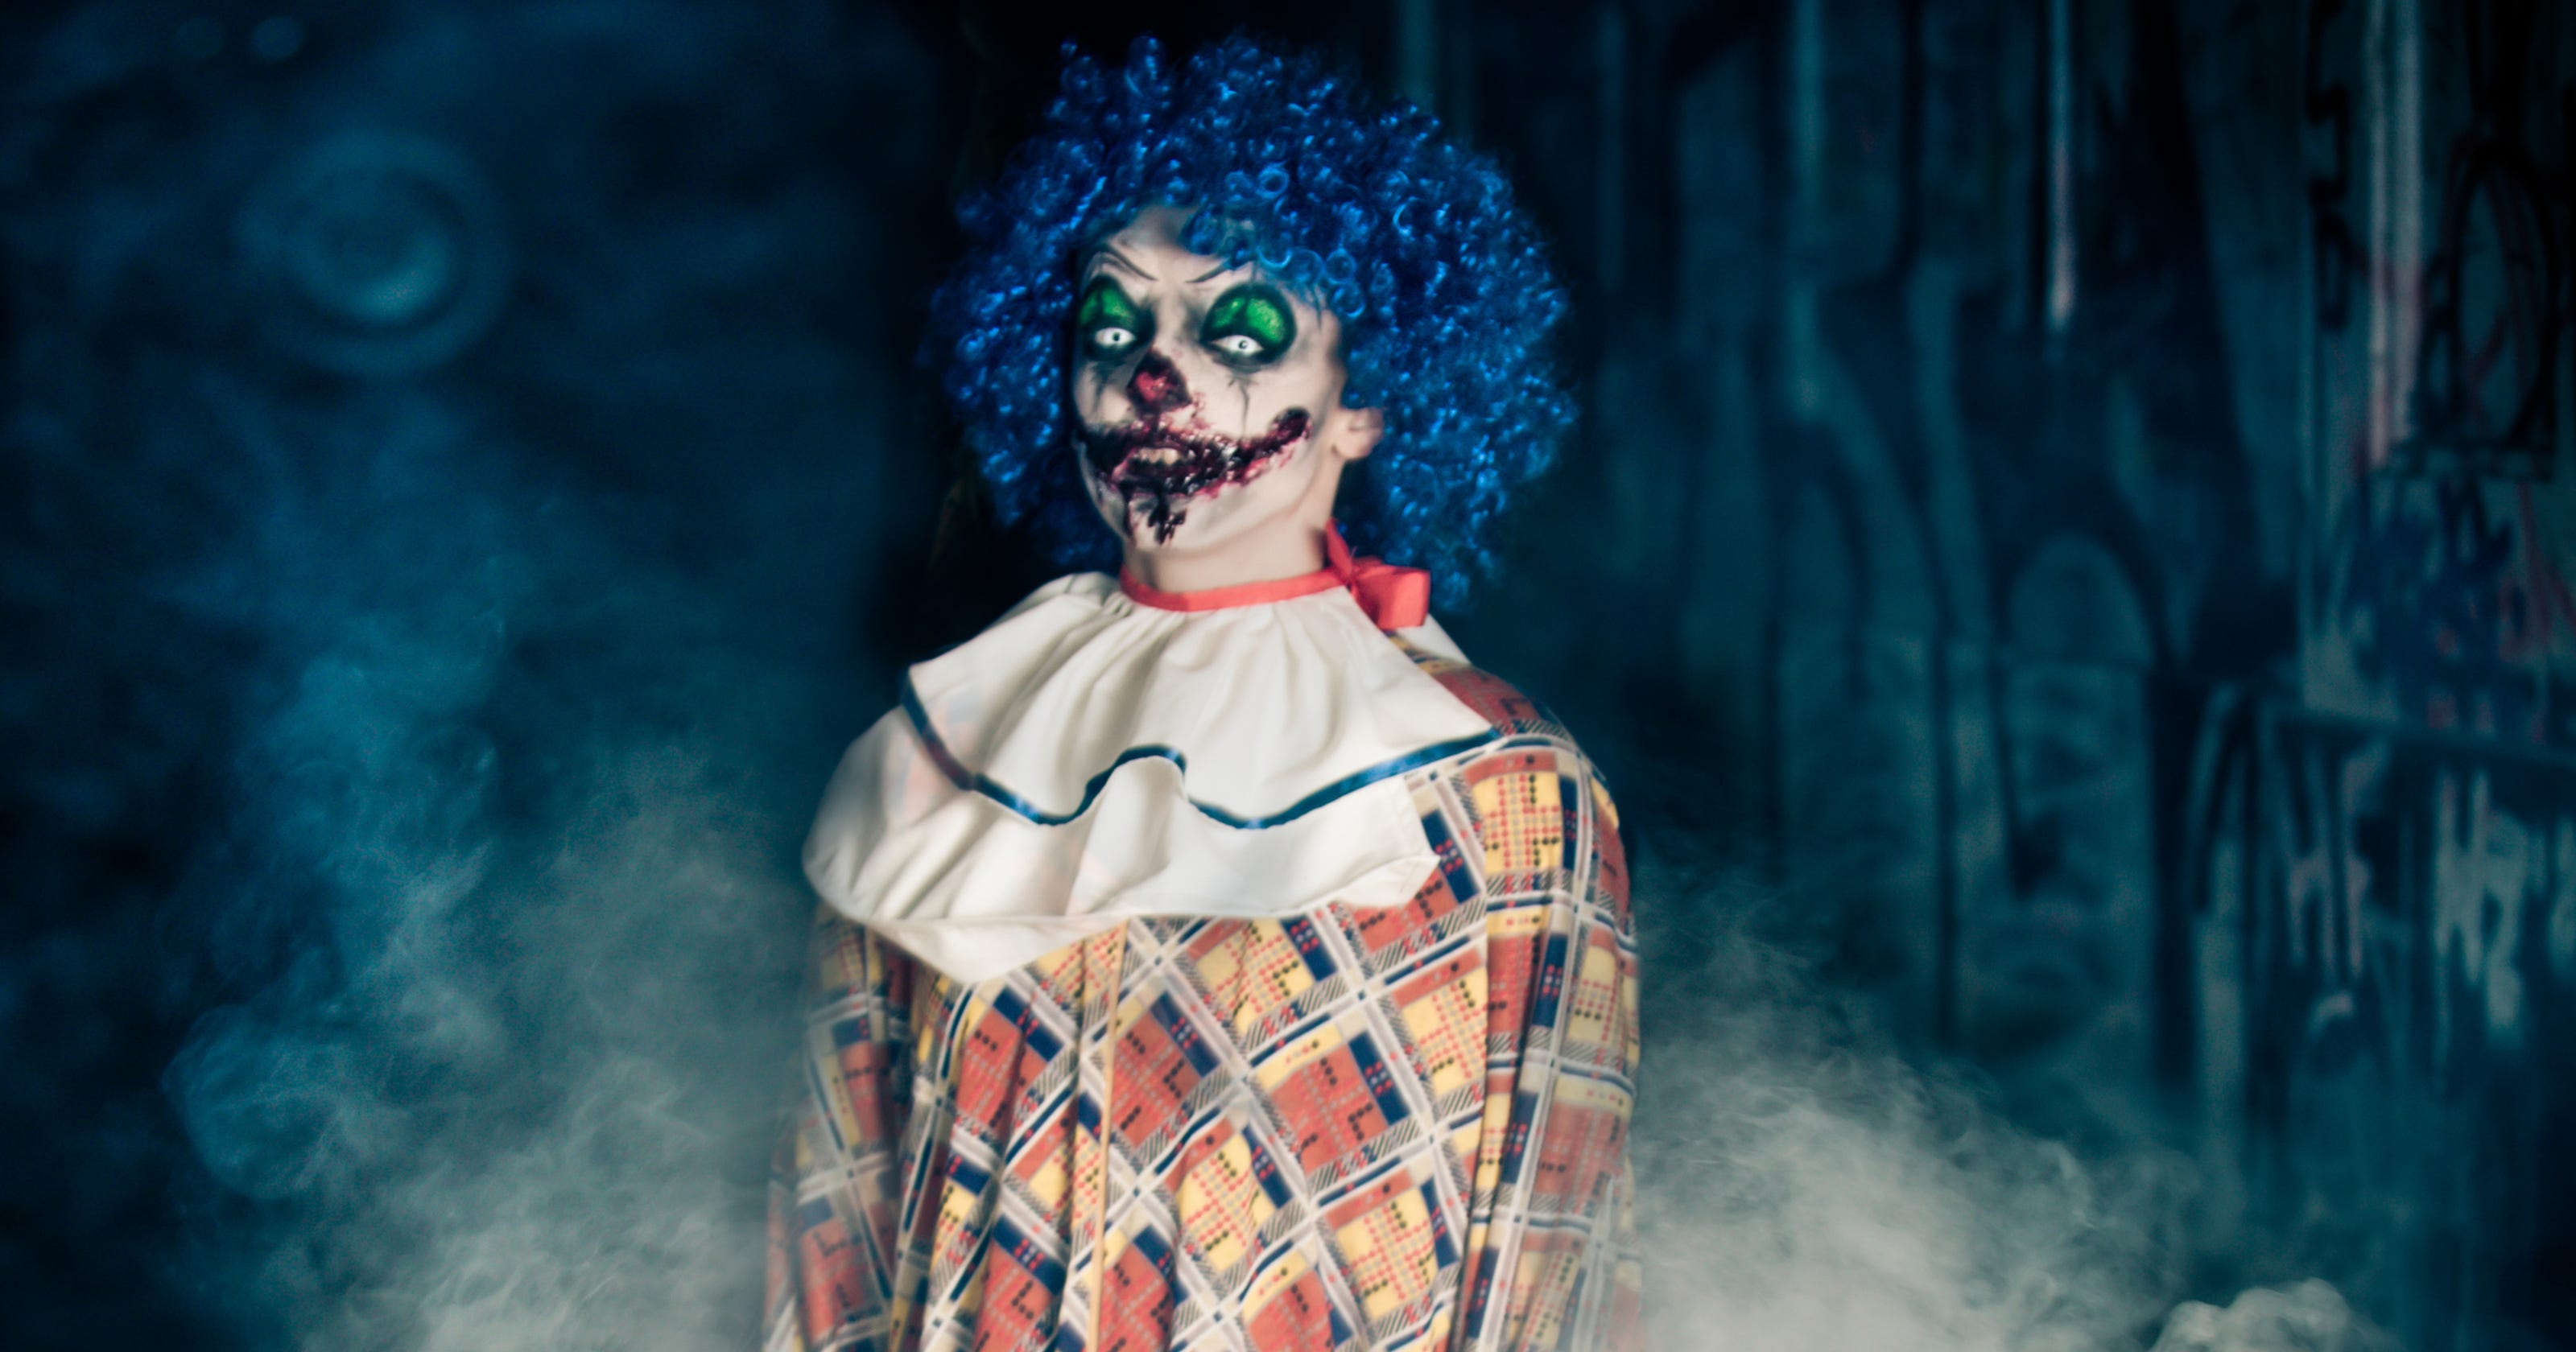 Serious or just a sick joke? What we know about creepy ...